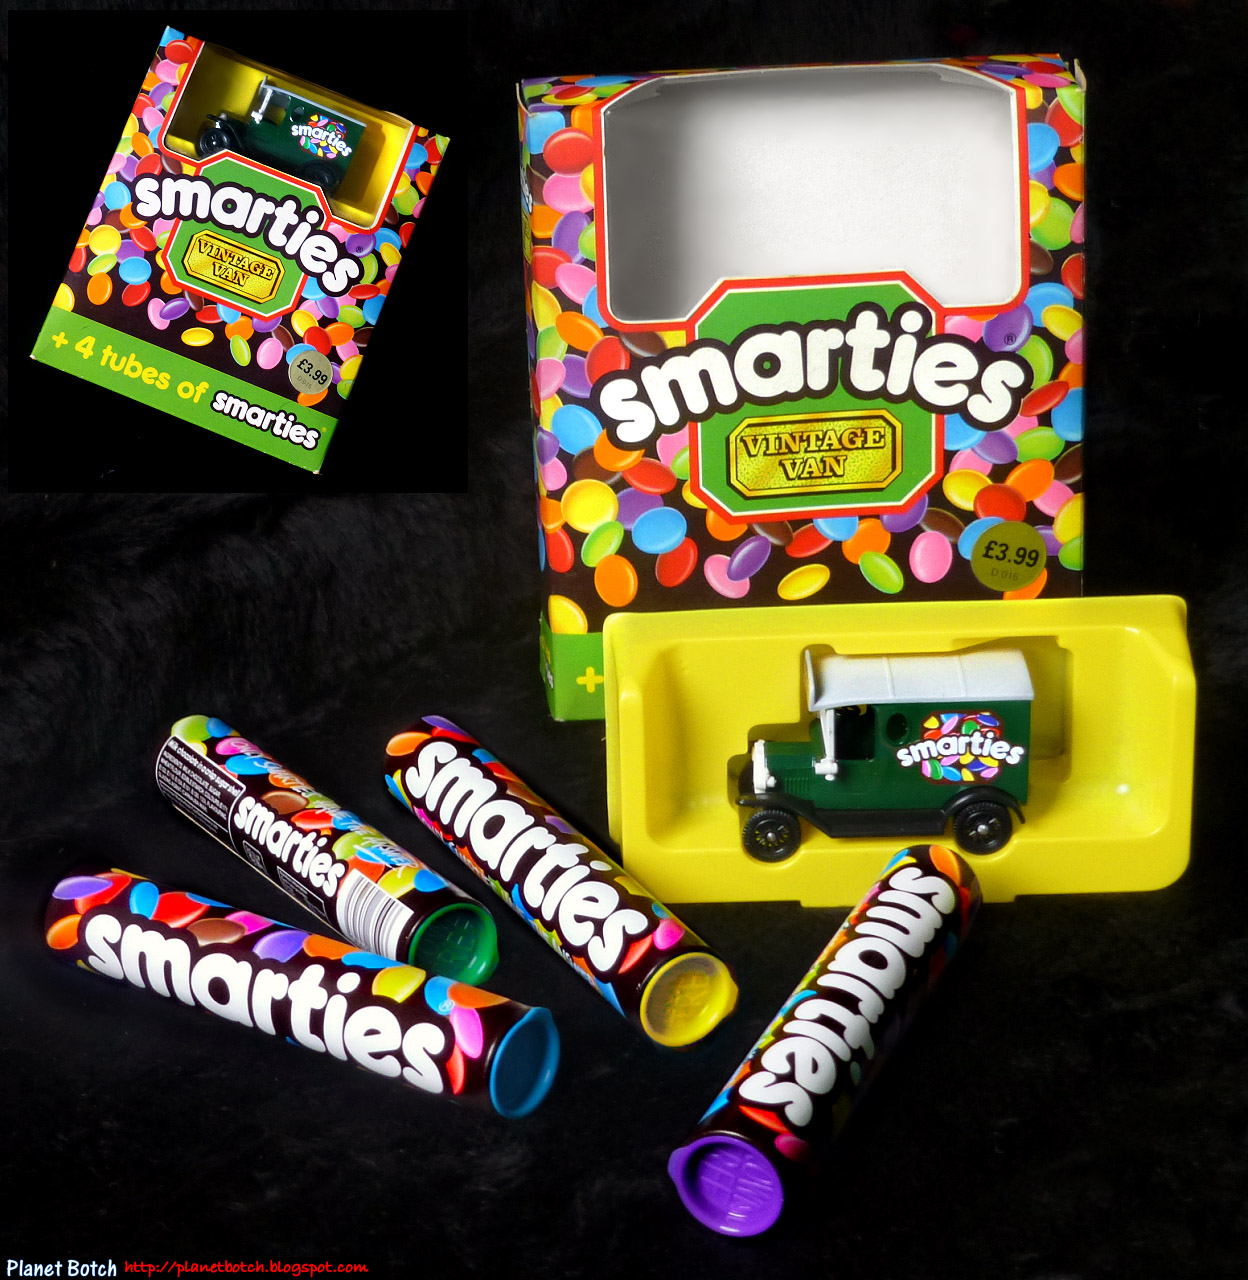 The Smarties Vintage Van Set | Planet Botch Smarties Box Design